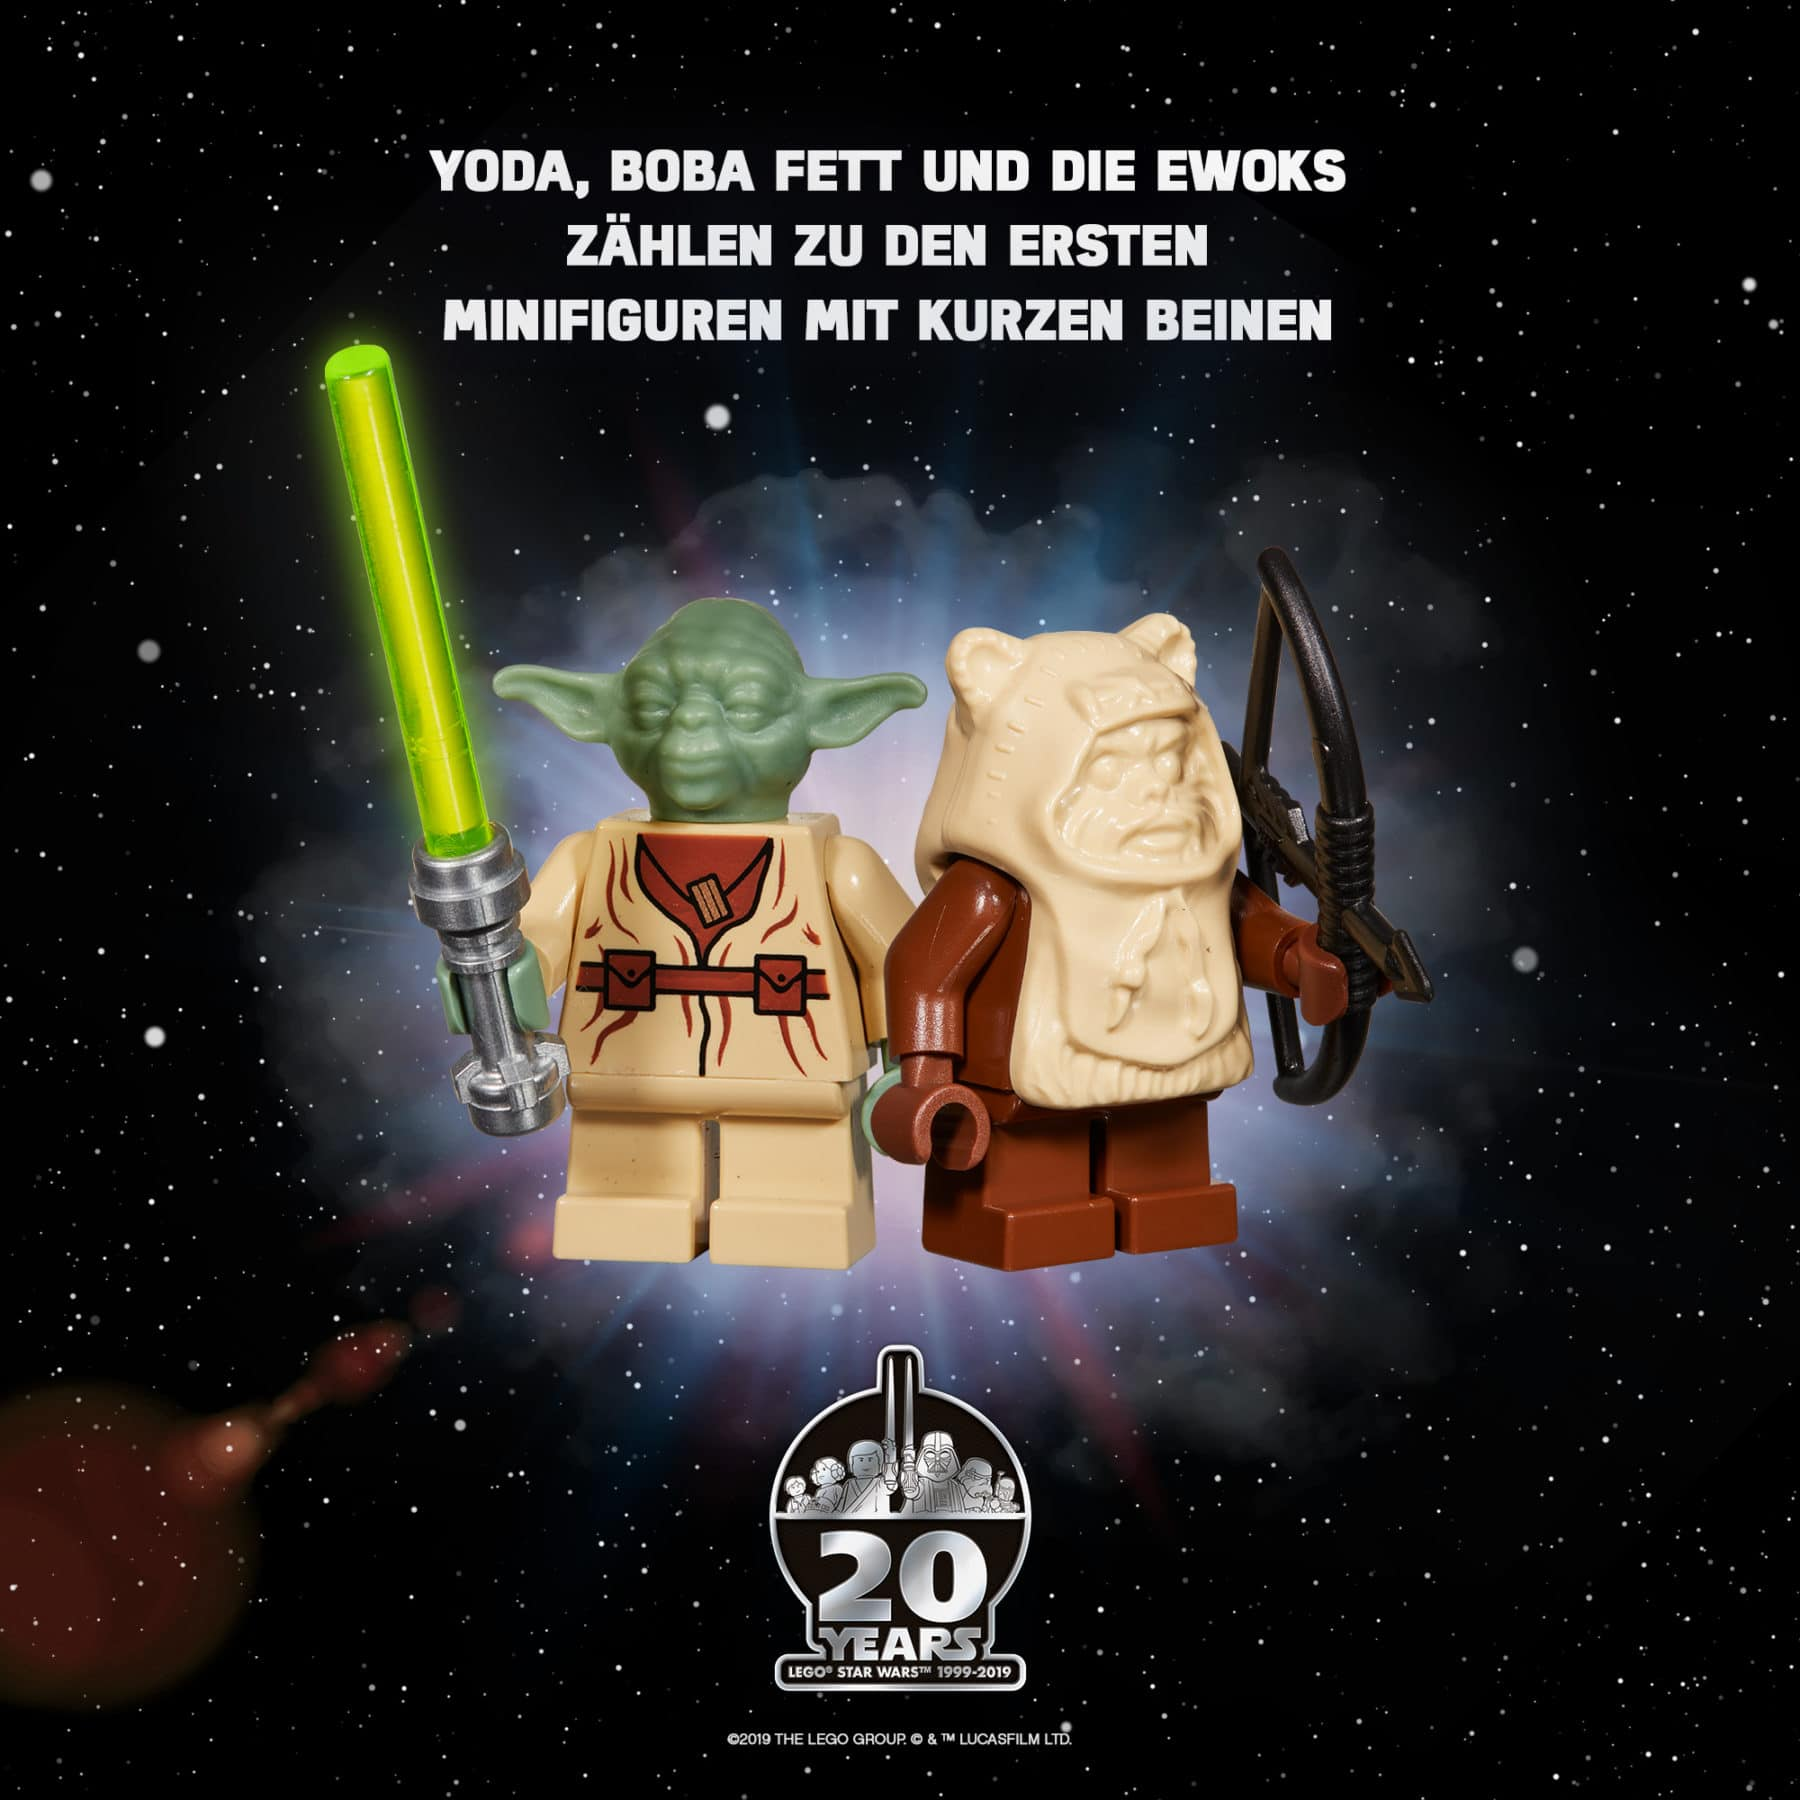 LEGO Star Wars 20th Anniversary Fakten